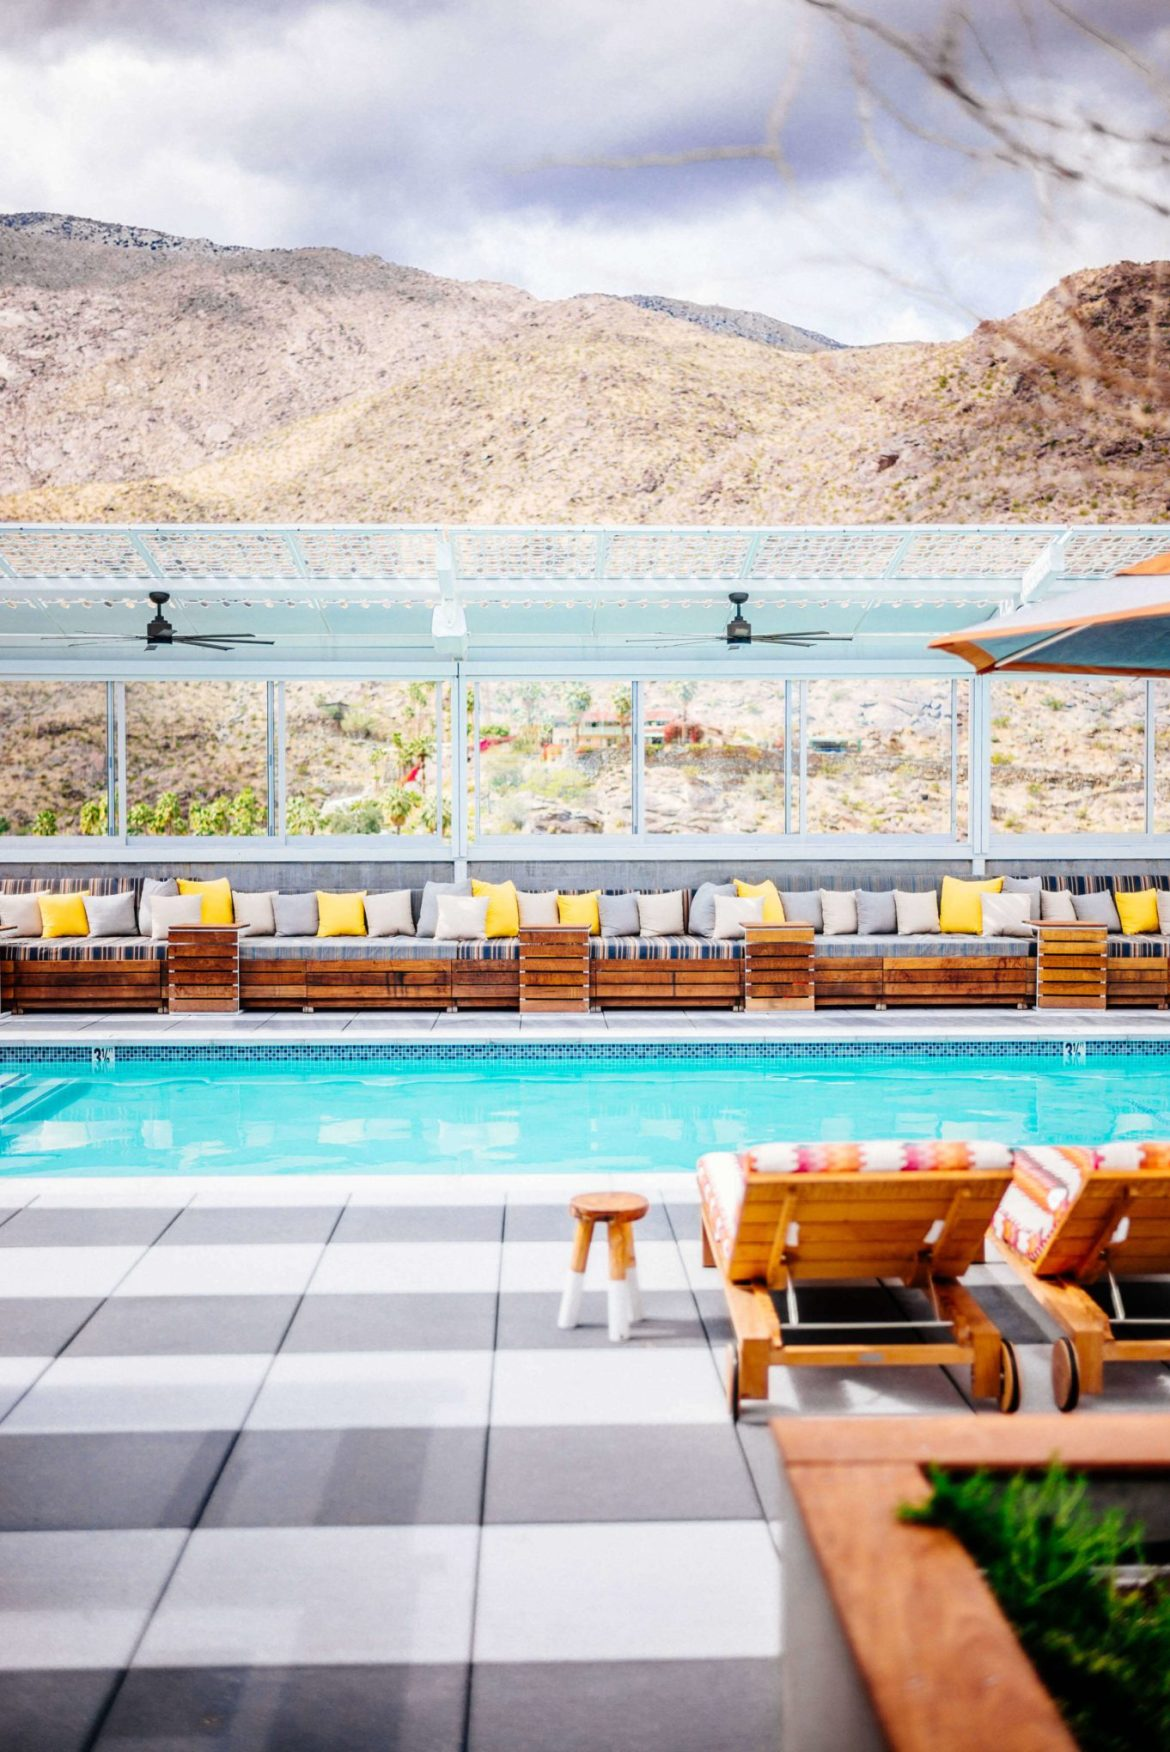 Stay at the Kimpton with a rooftop Pool at the Kimpton Rowan Hotel in Palm Springs has 360 views of Palm Springs, it also has one of the best rooftop patios in Palm Springs, it's a dessert retreat, The Taste Edit